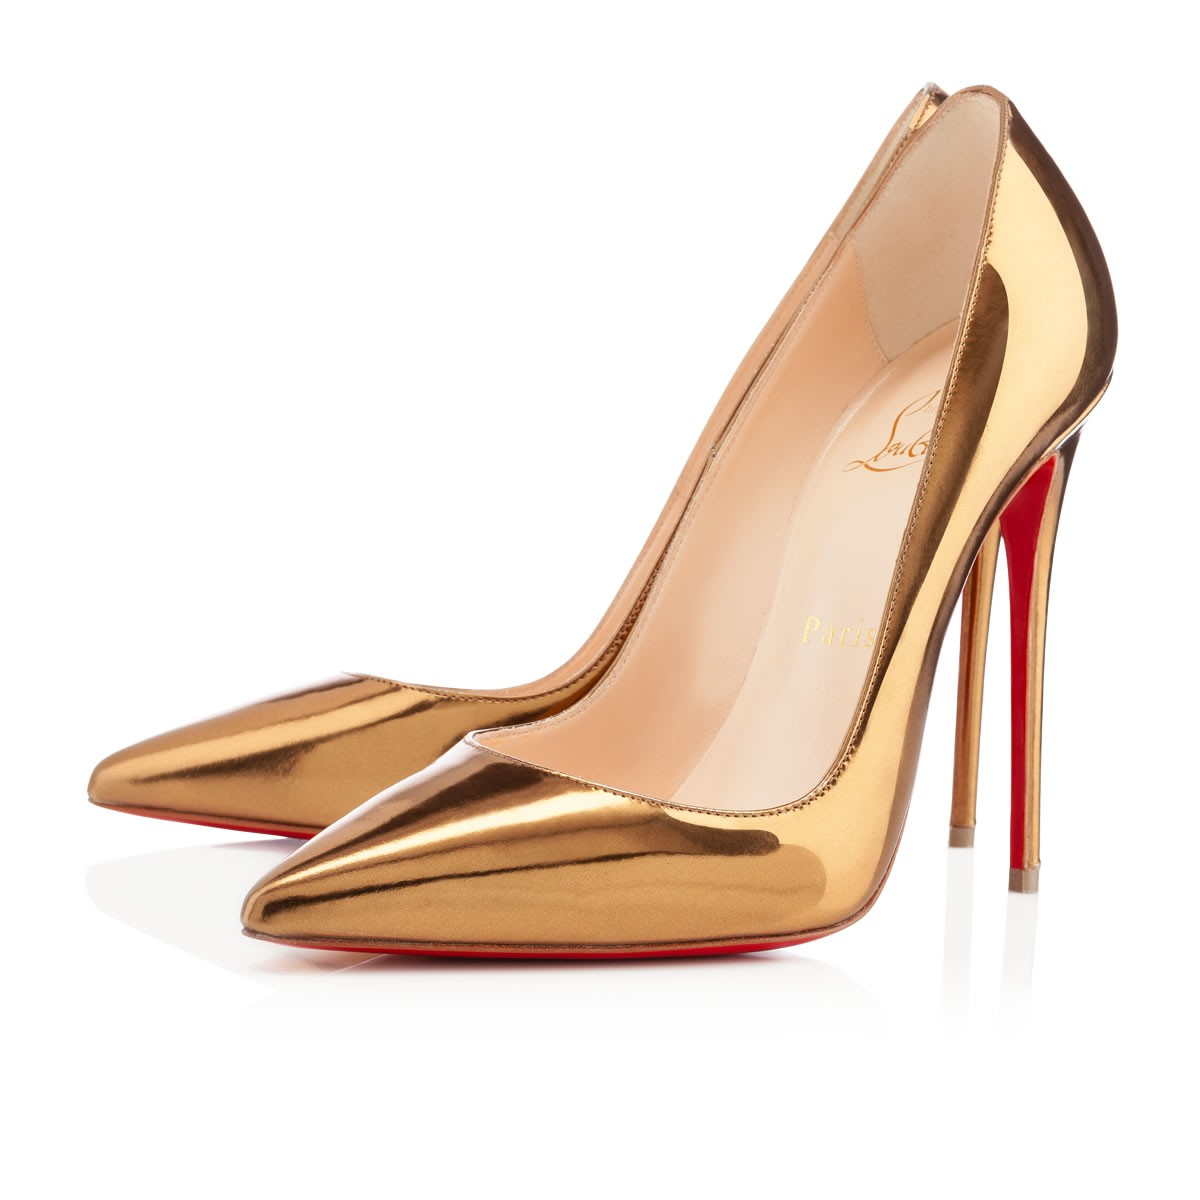 Christian Louboutin So Kate Kid Leather Pumps in Black | Lyst